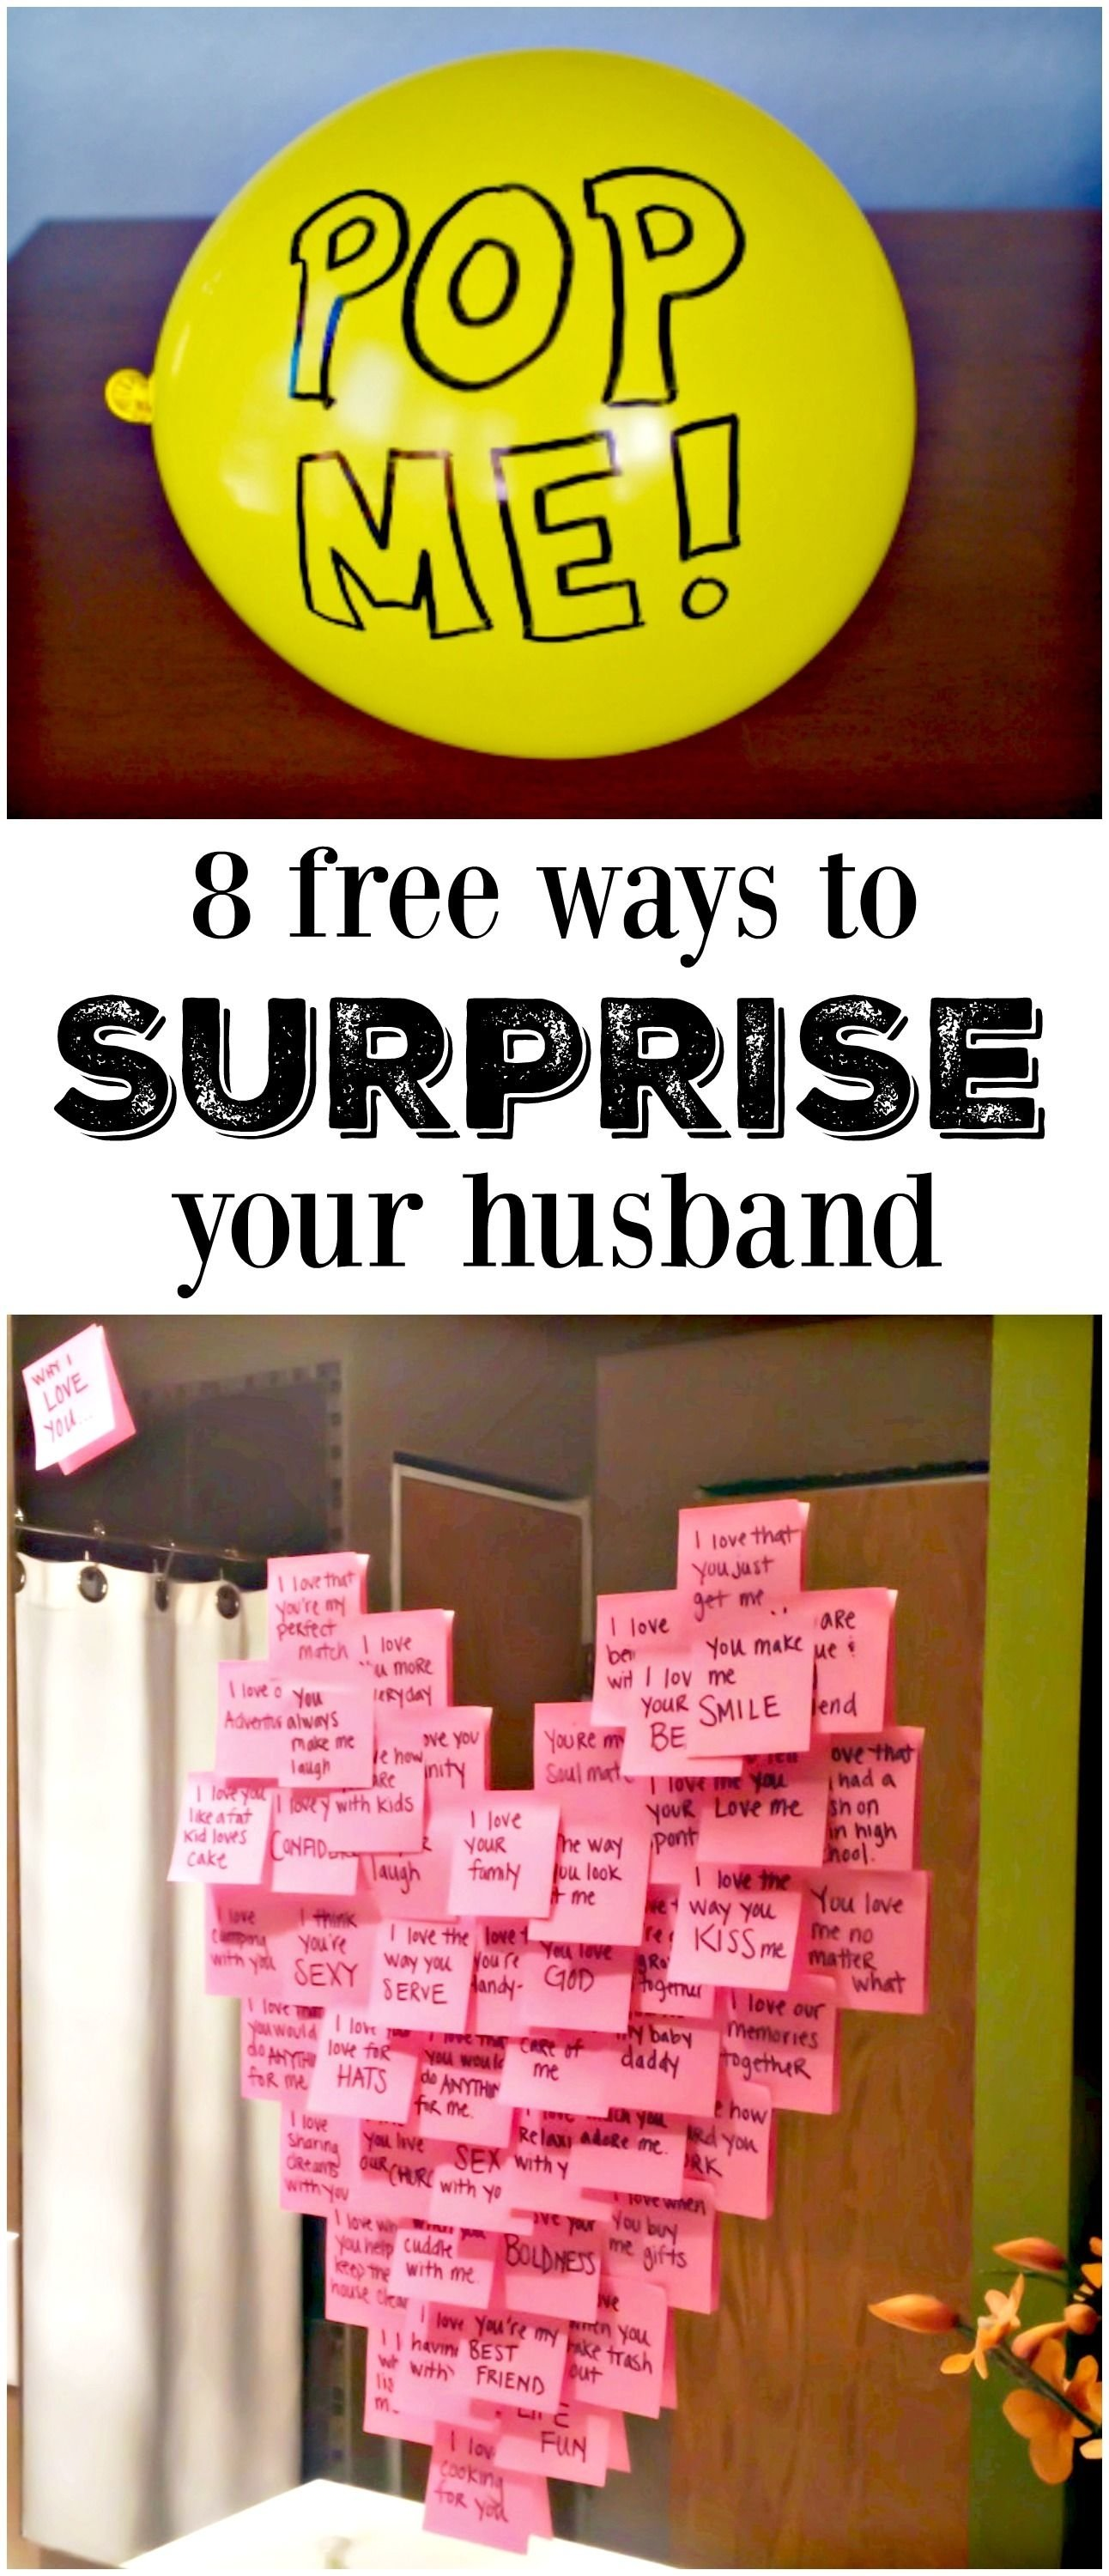 10 Spectacular Birthday Gift Ideas For Husband Who Has Everything 8 Meaningful Ways To Make His